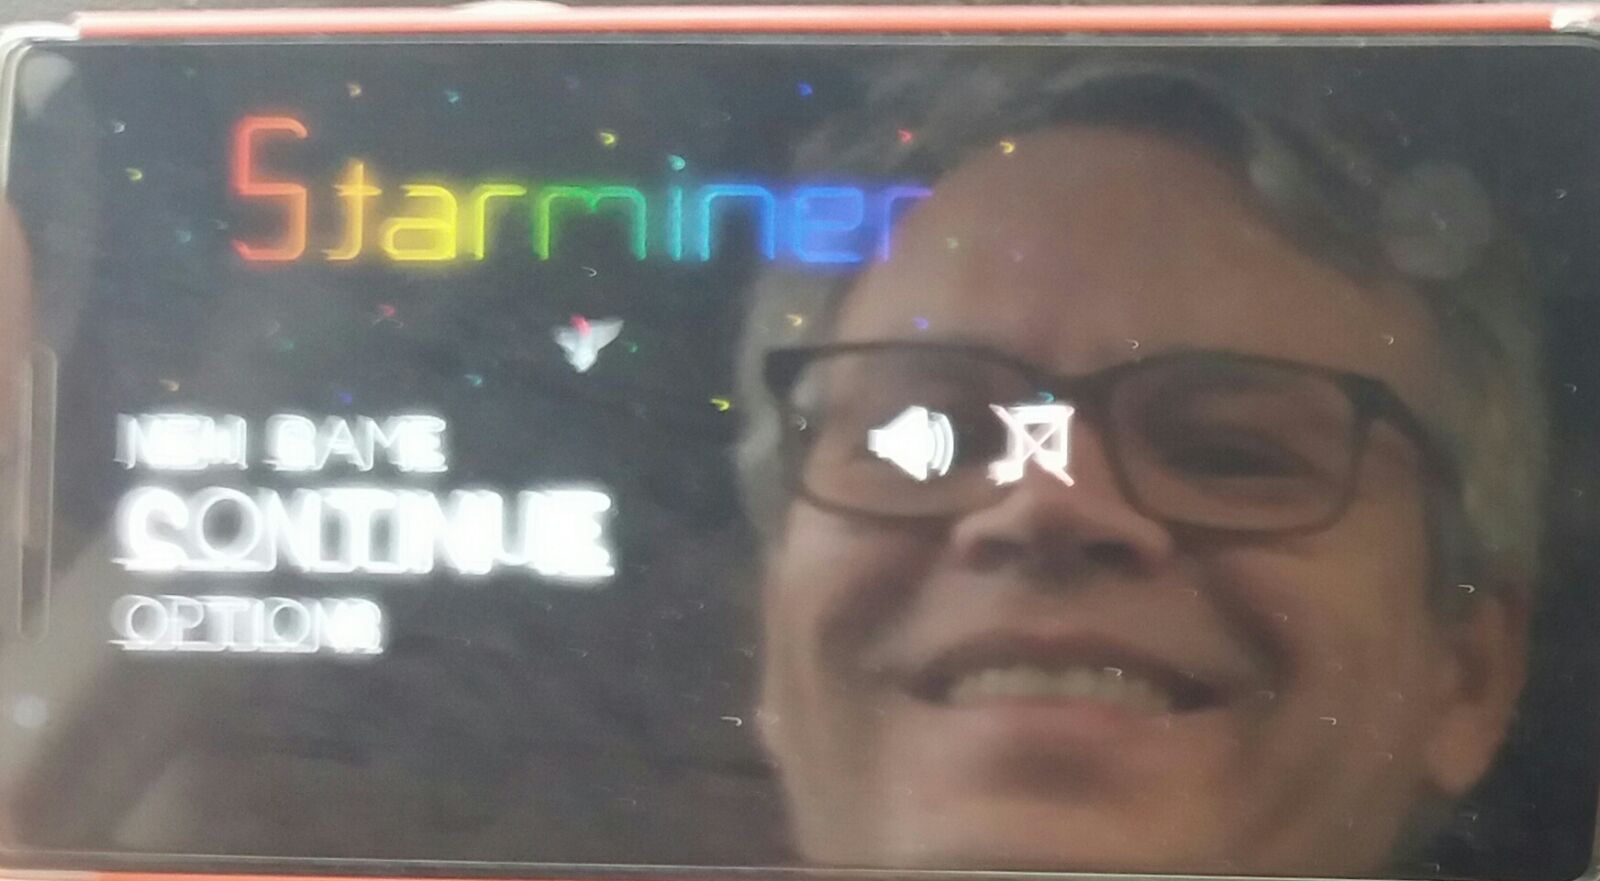 Edi Woodcock reflected on his phone's screen while running Starminer